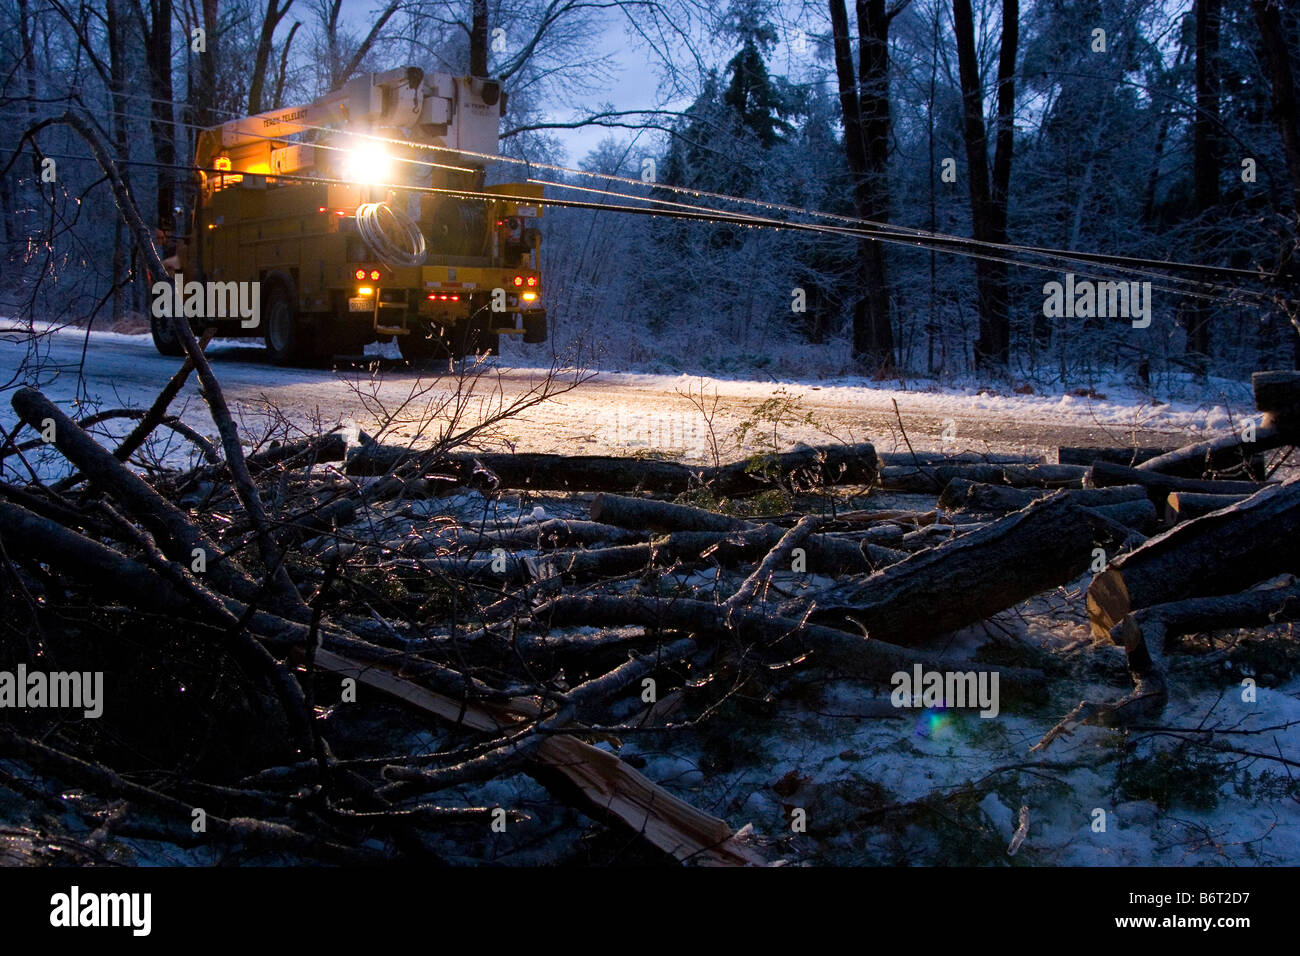 Utility truck lights a fallen tree in the roadway at dusk during winter - Stock Image